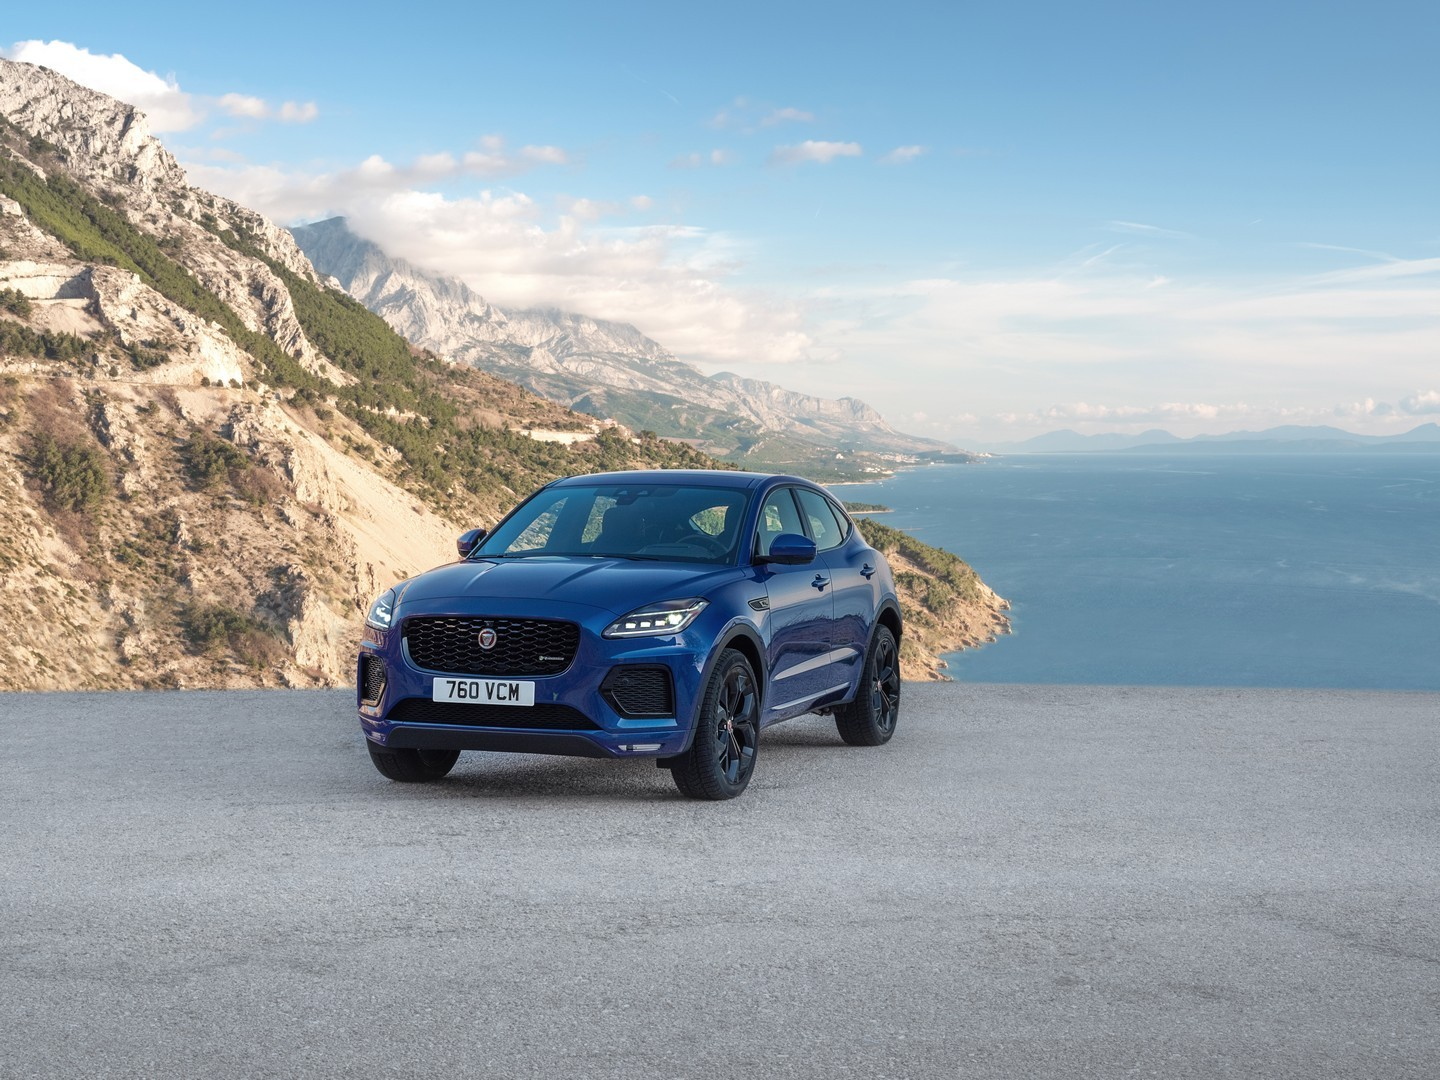 2021 jaguar e-pace gets updated to complete the